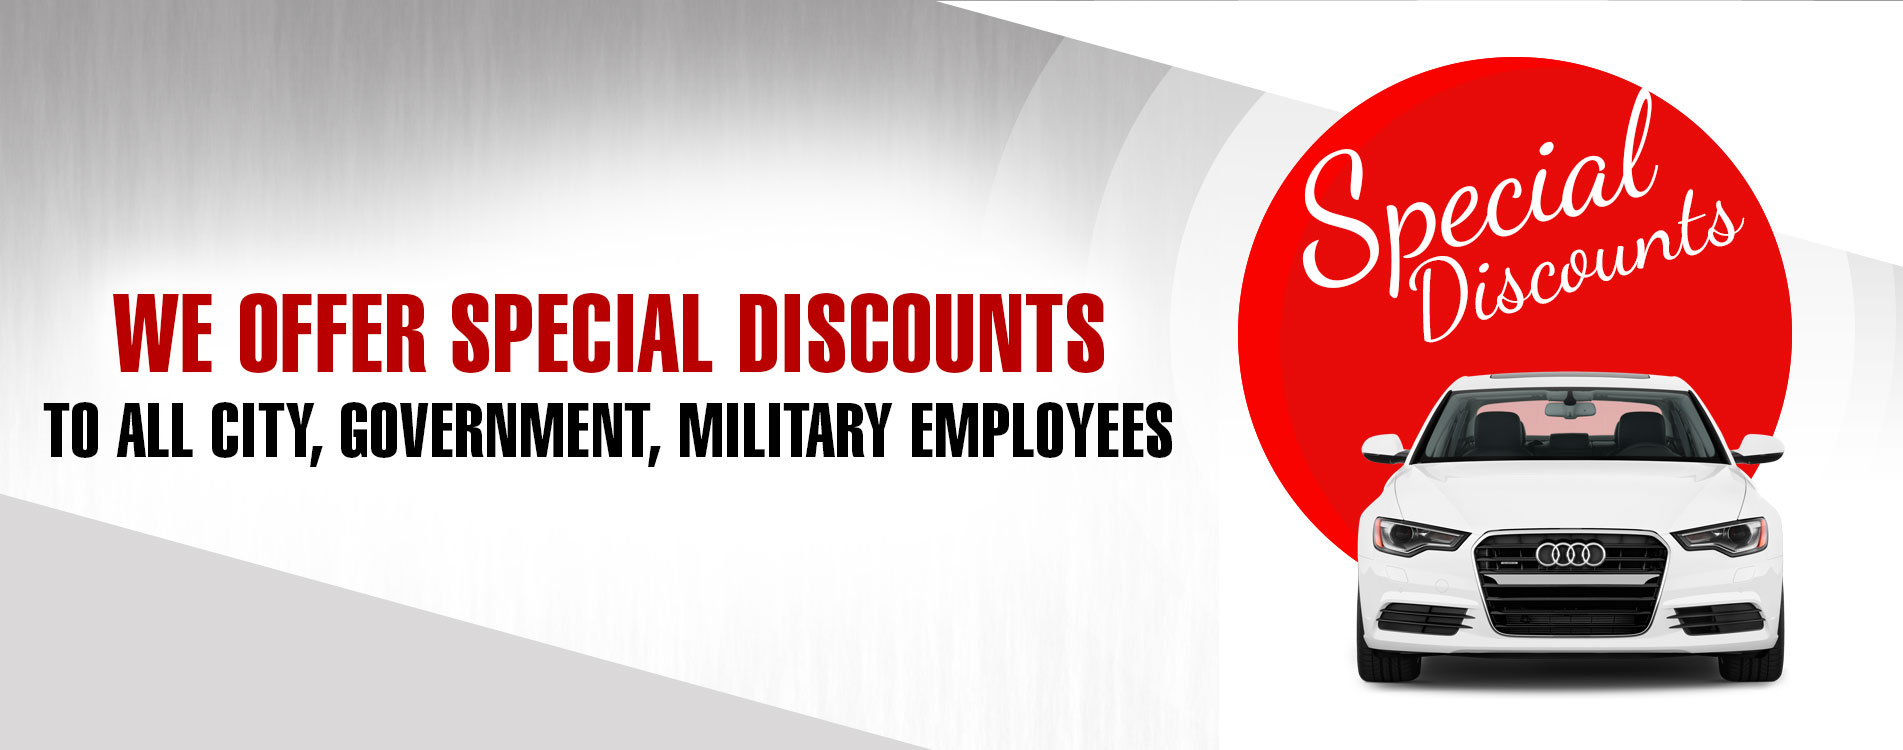 Special discounts to all city, government, military Employees